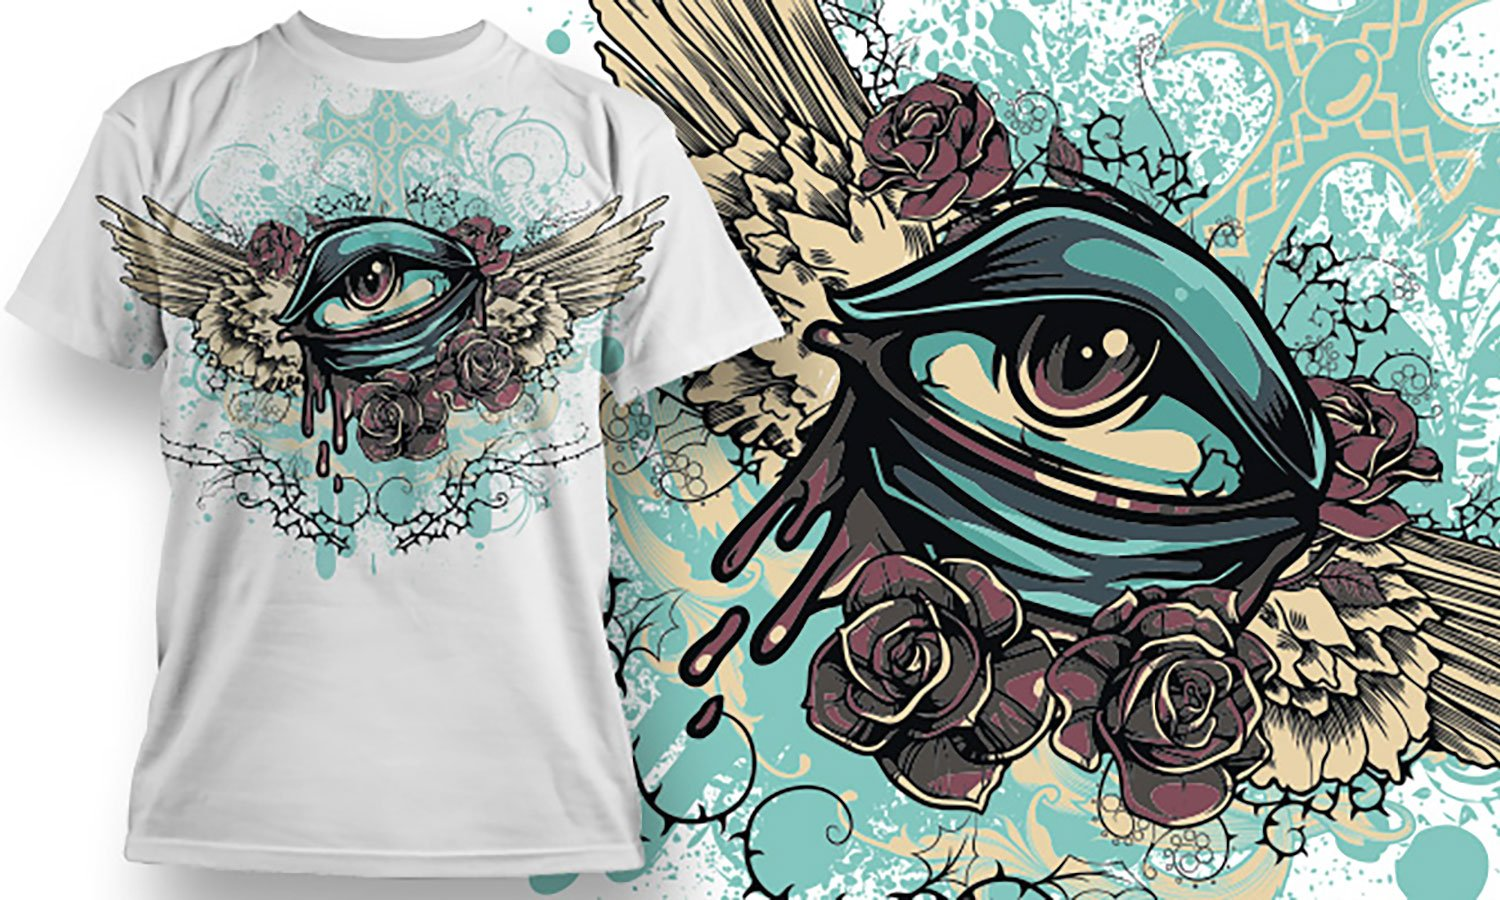 Oko - Printed T-Shirt for Men, Women and Kids - TS374